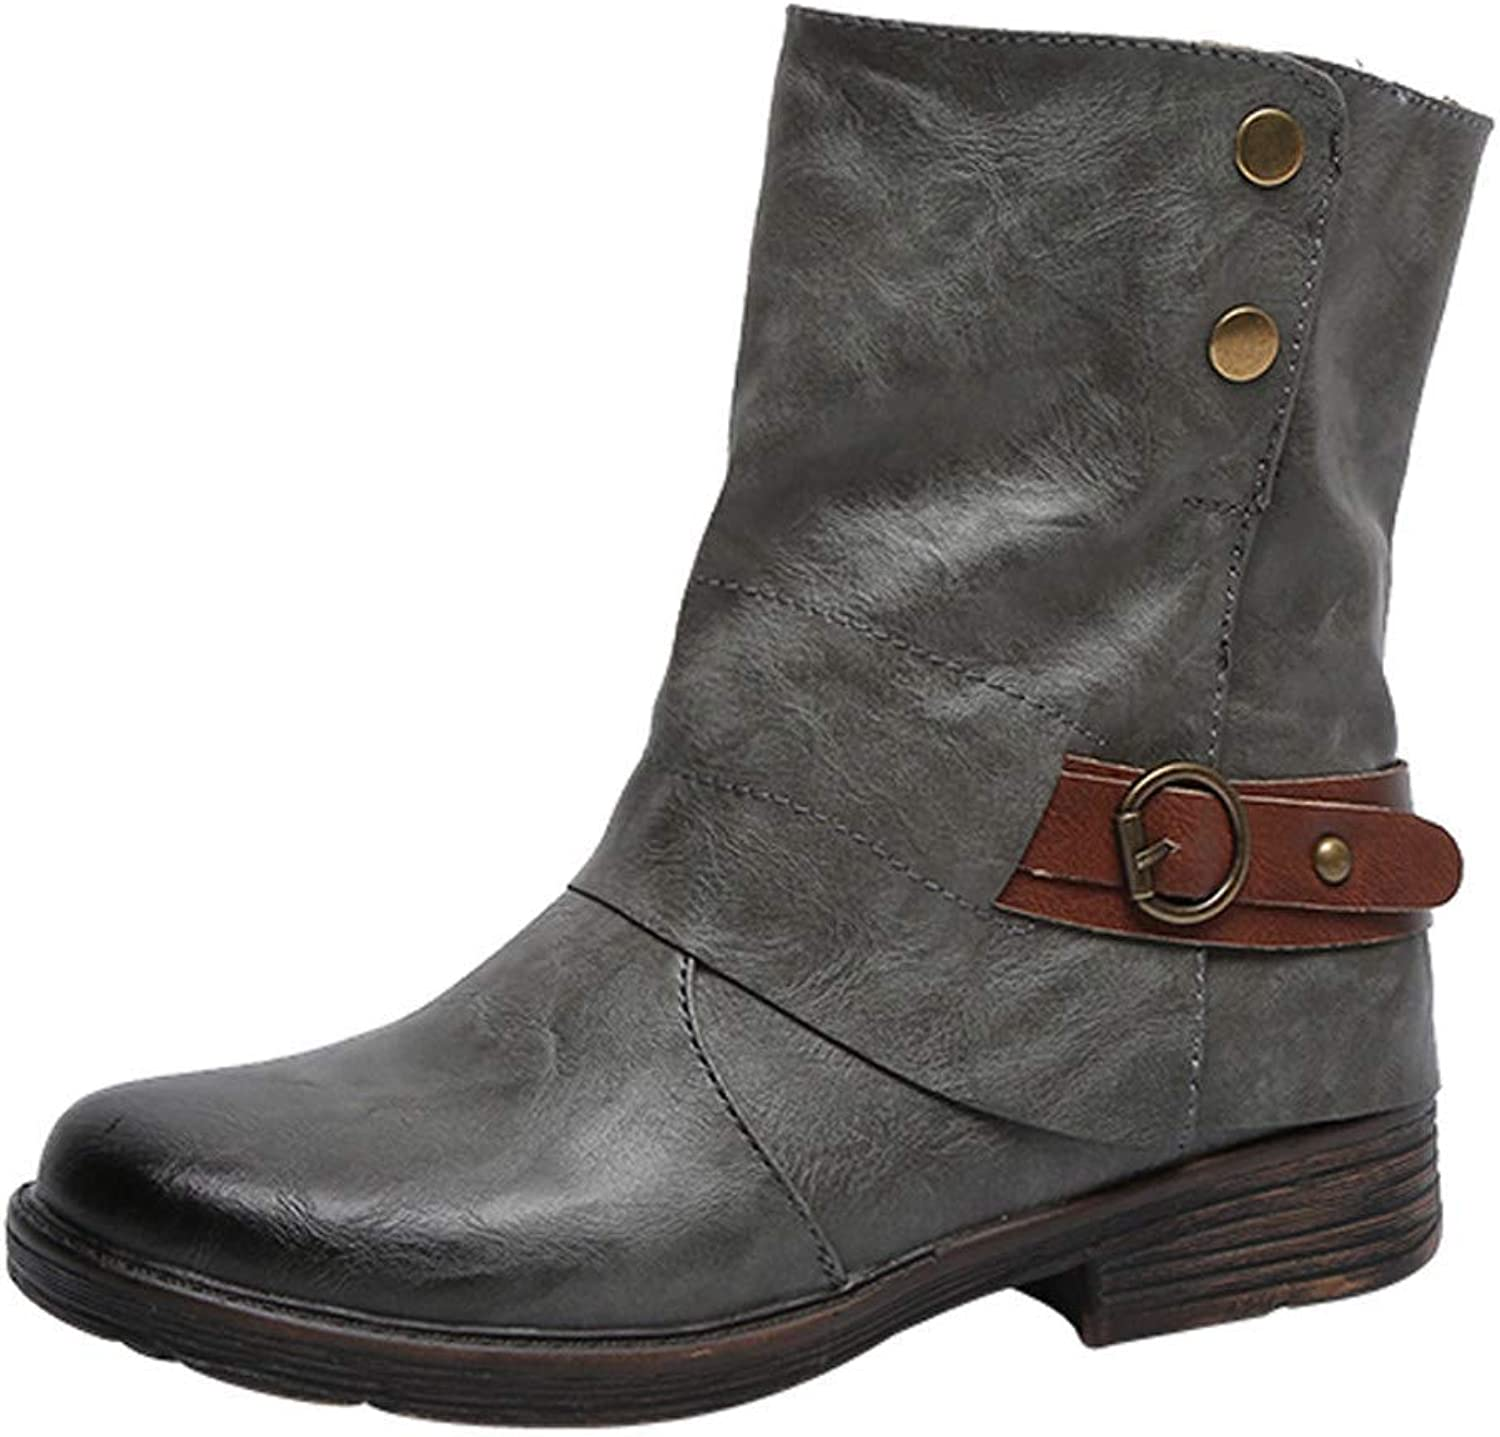 Vintage Women Leather Ankle Boots Square Heel Zipper Round Toe Martin Boots